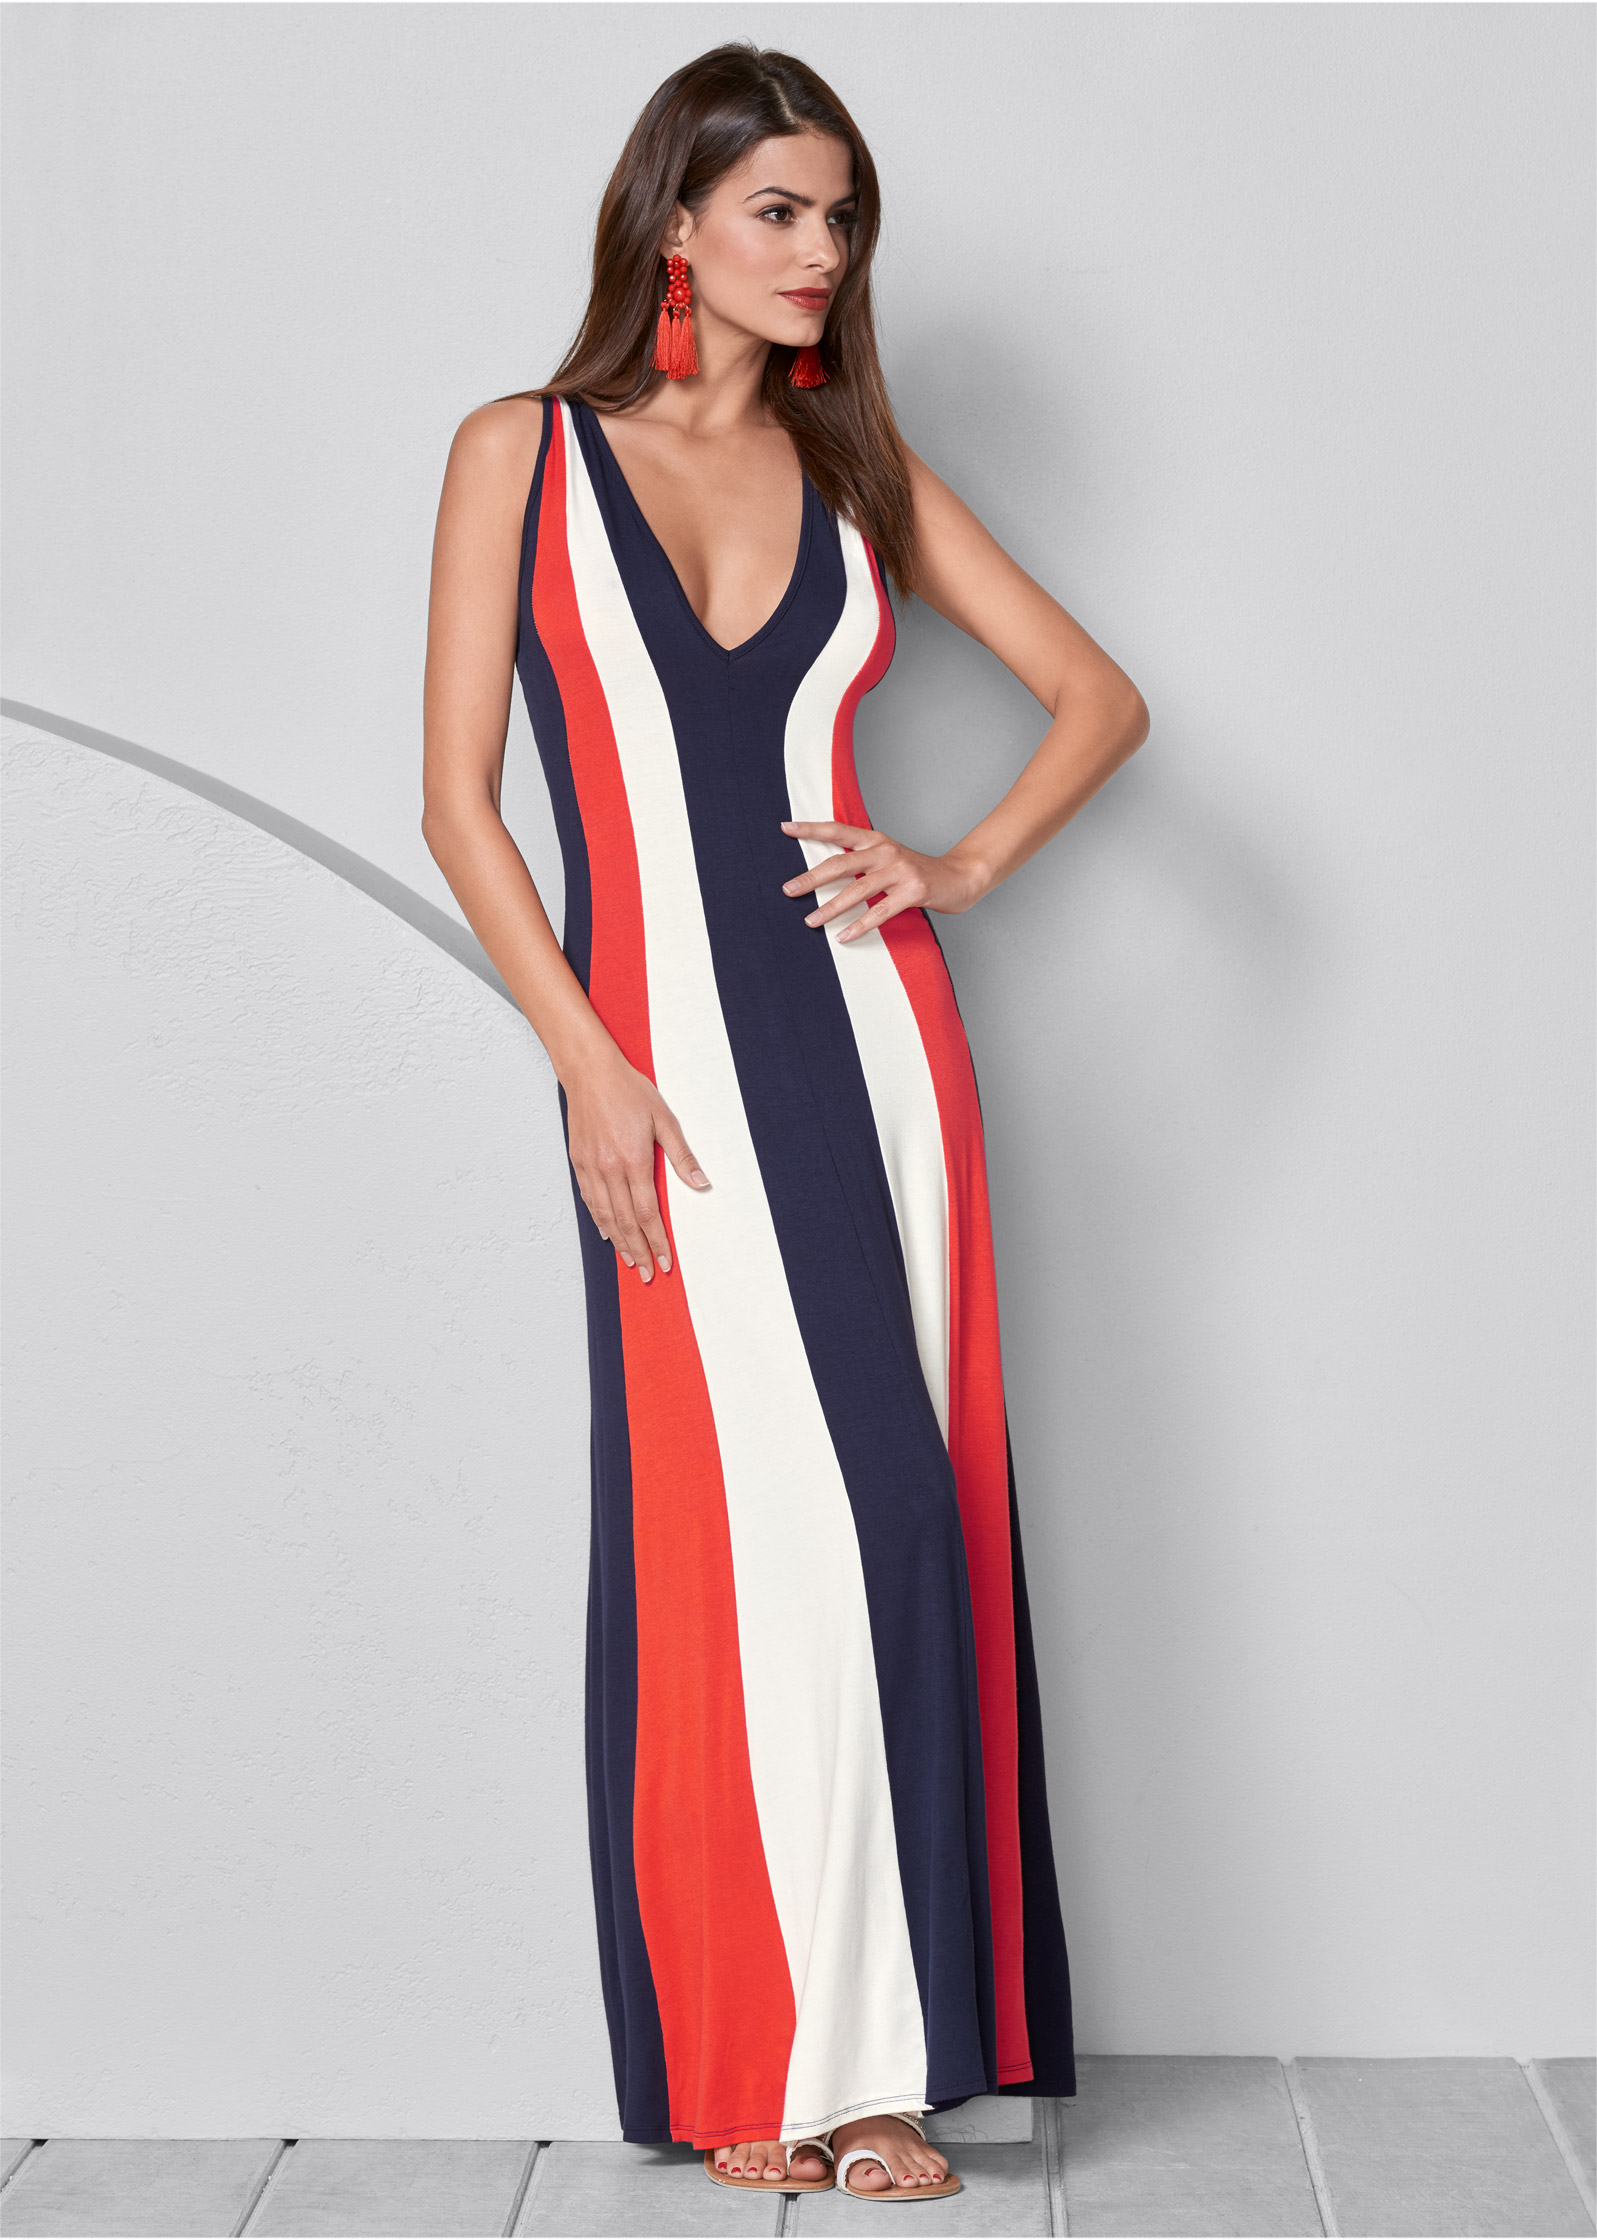 Shop for Dresses by Color